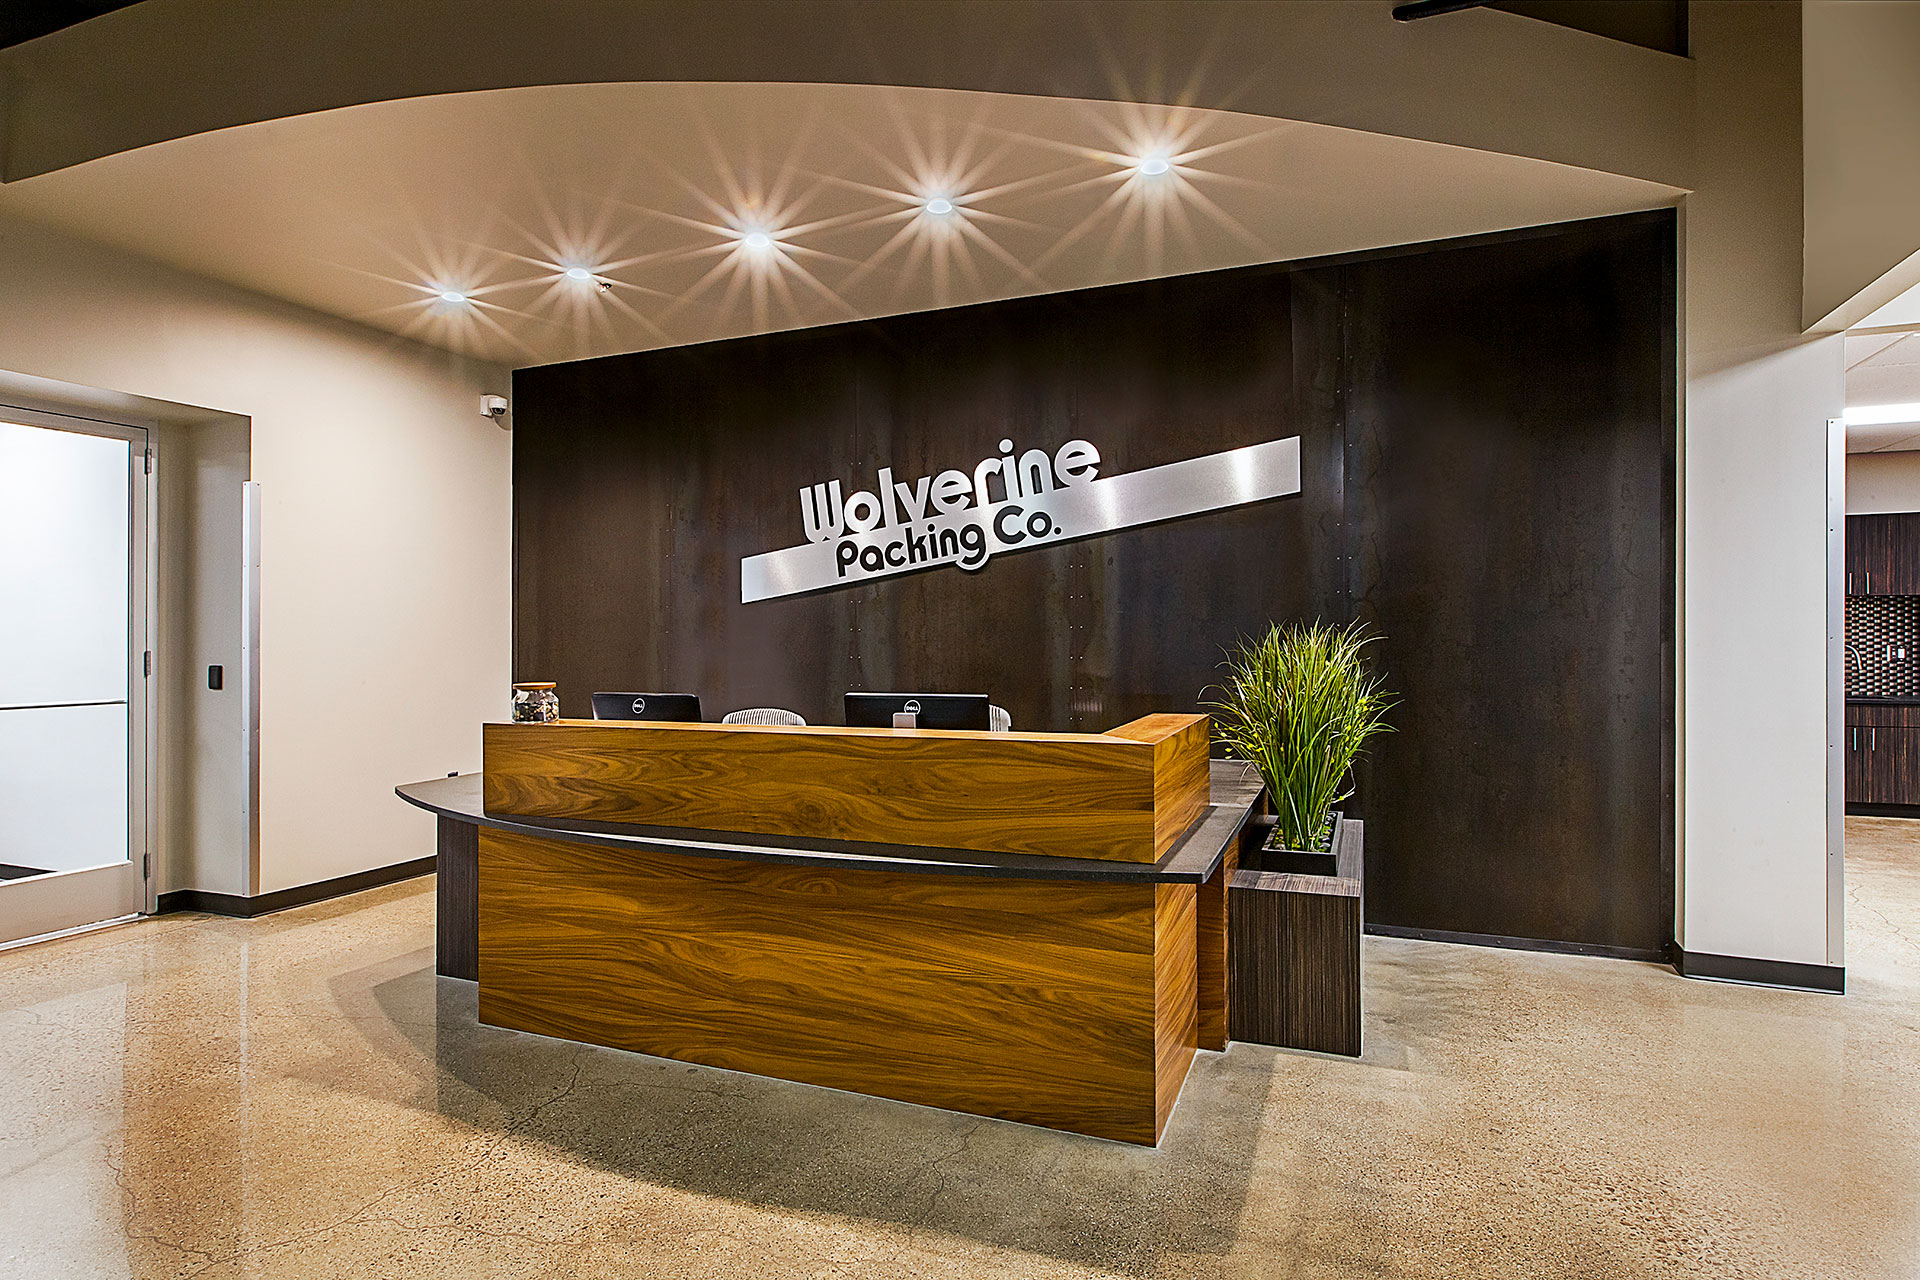 Custom reception desk with walnut veneer slats, granite countertop and plastic laminate planter box with treated and sealed steel wall panels behind.